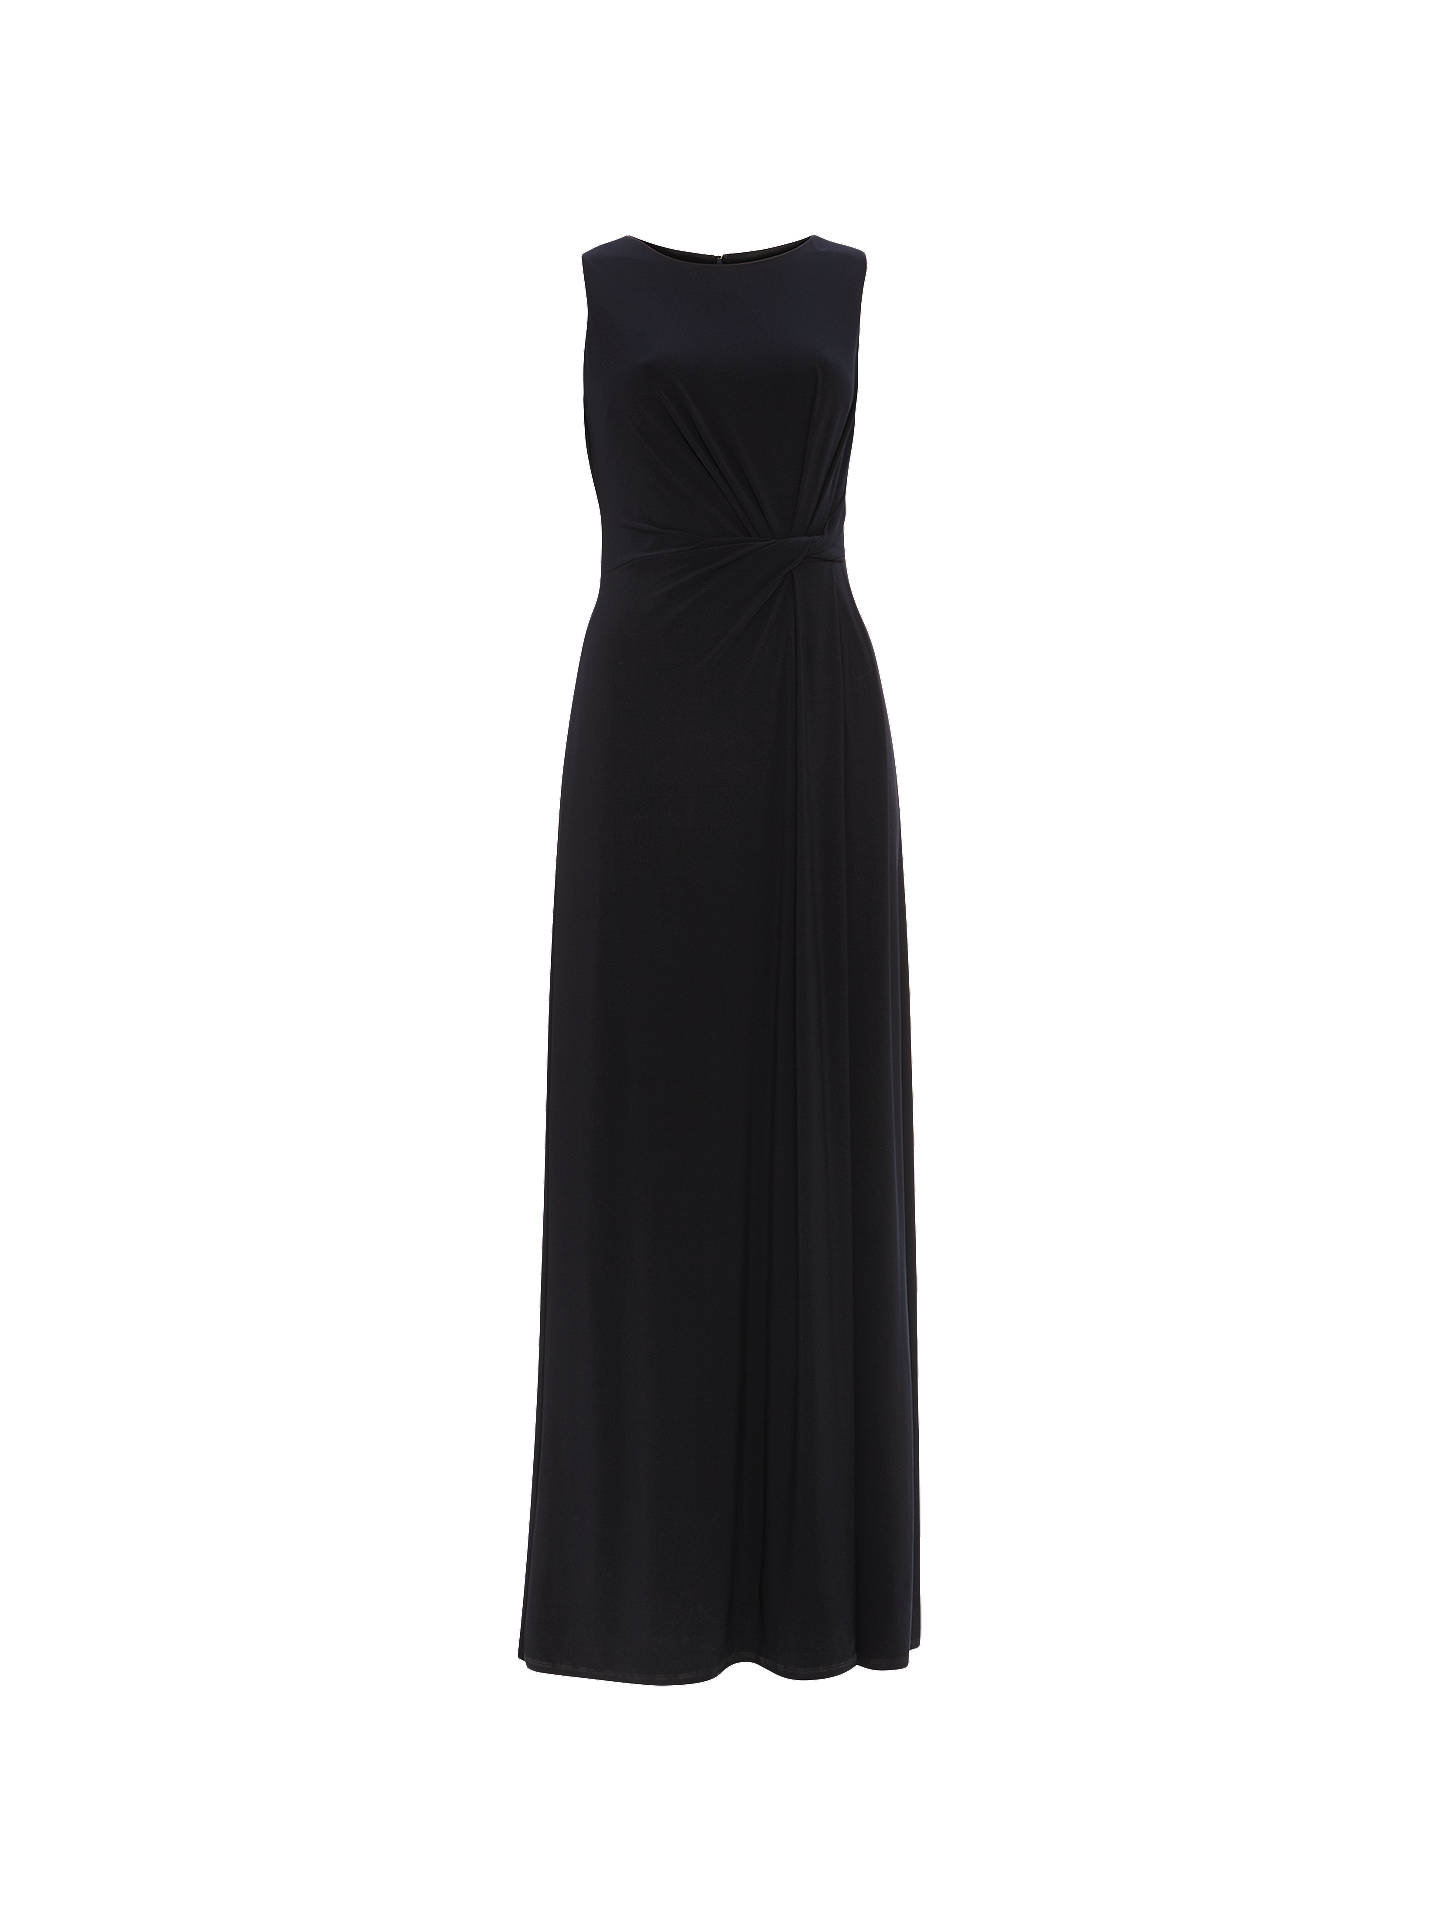 94b5131e5be ... Buy Phase Eight Carrie Jersey Maxi Dress, Navy, 6 Online at  johnlewis.com